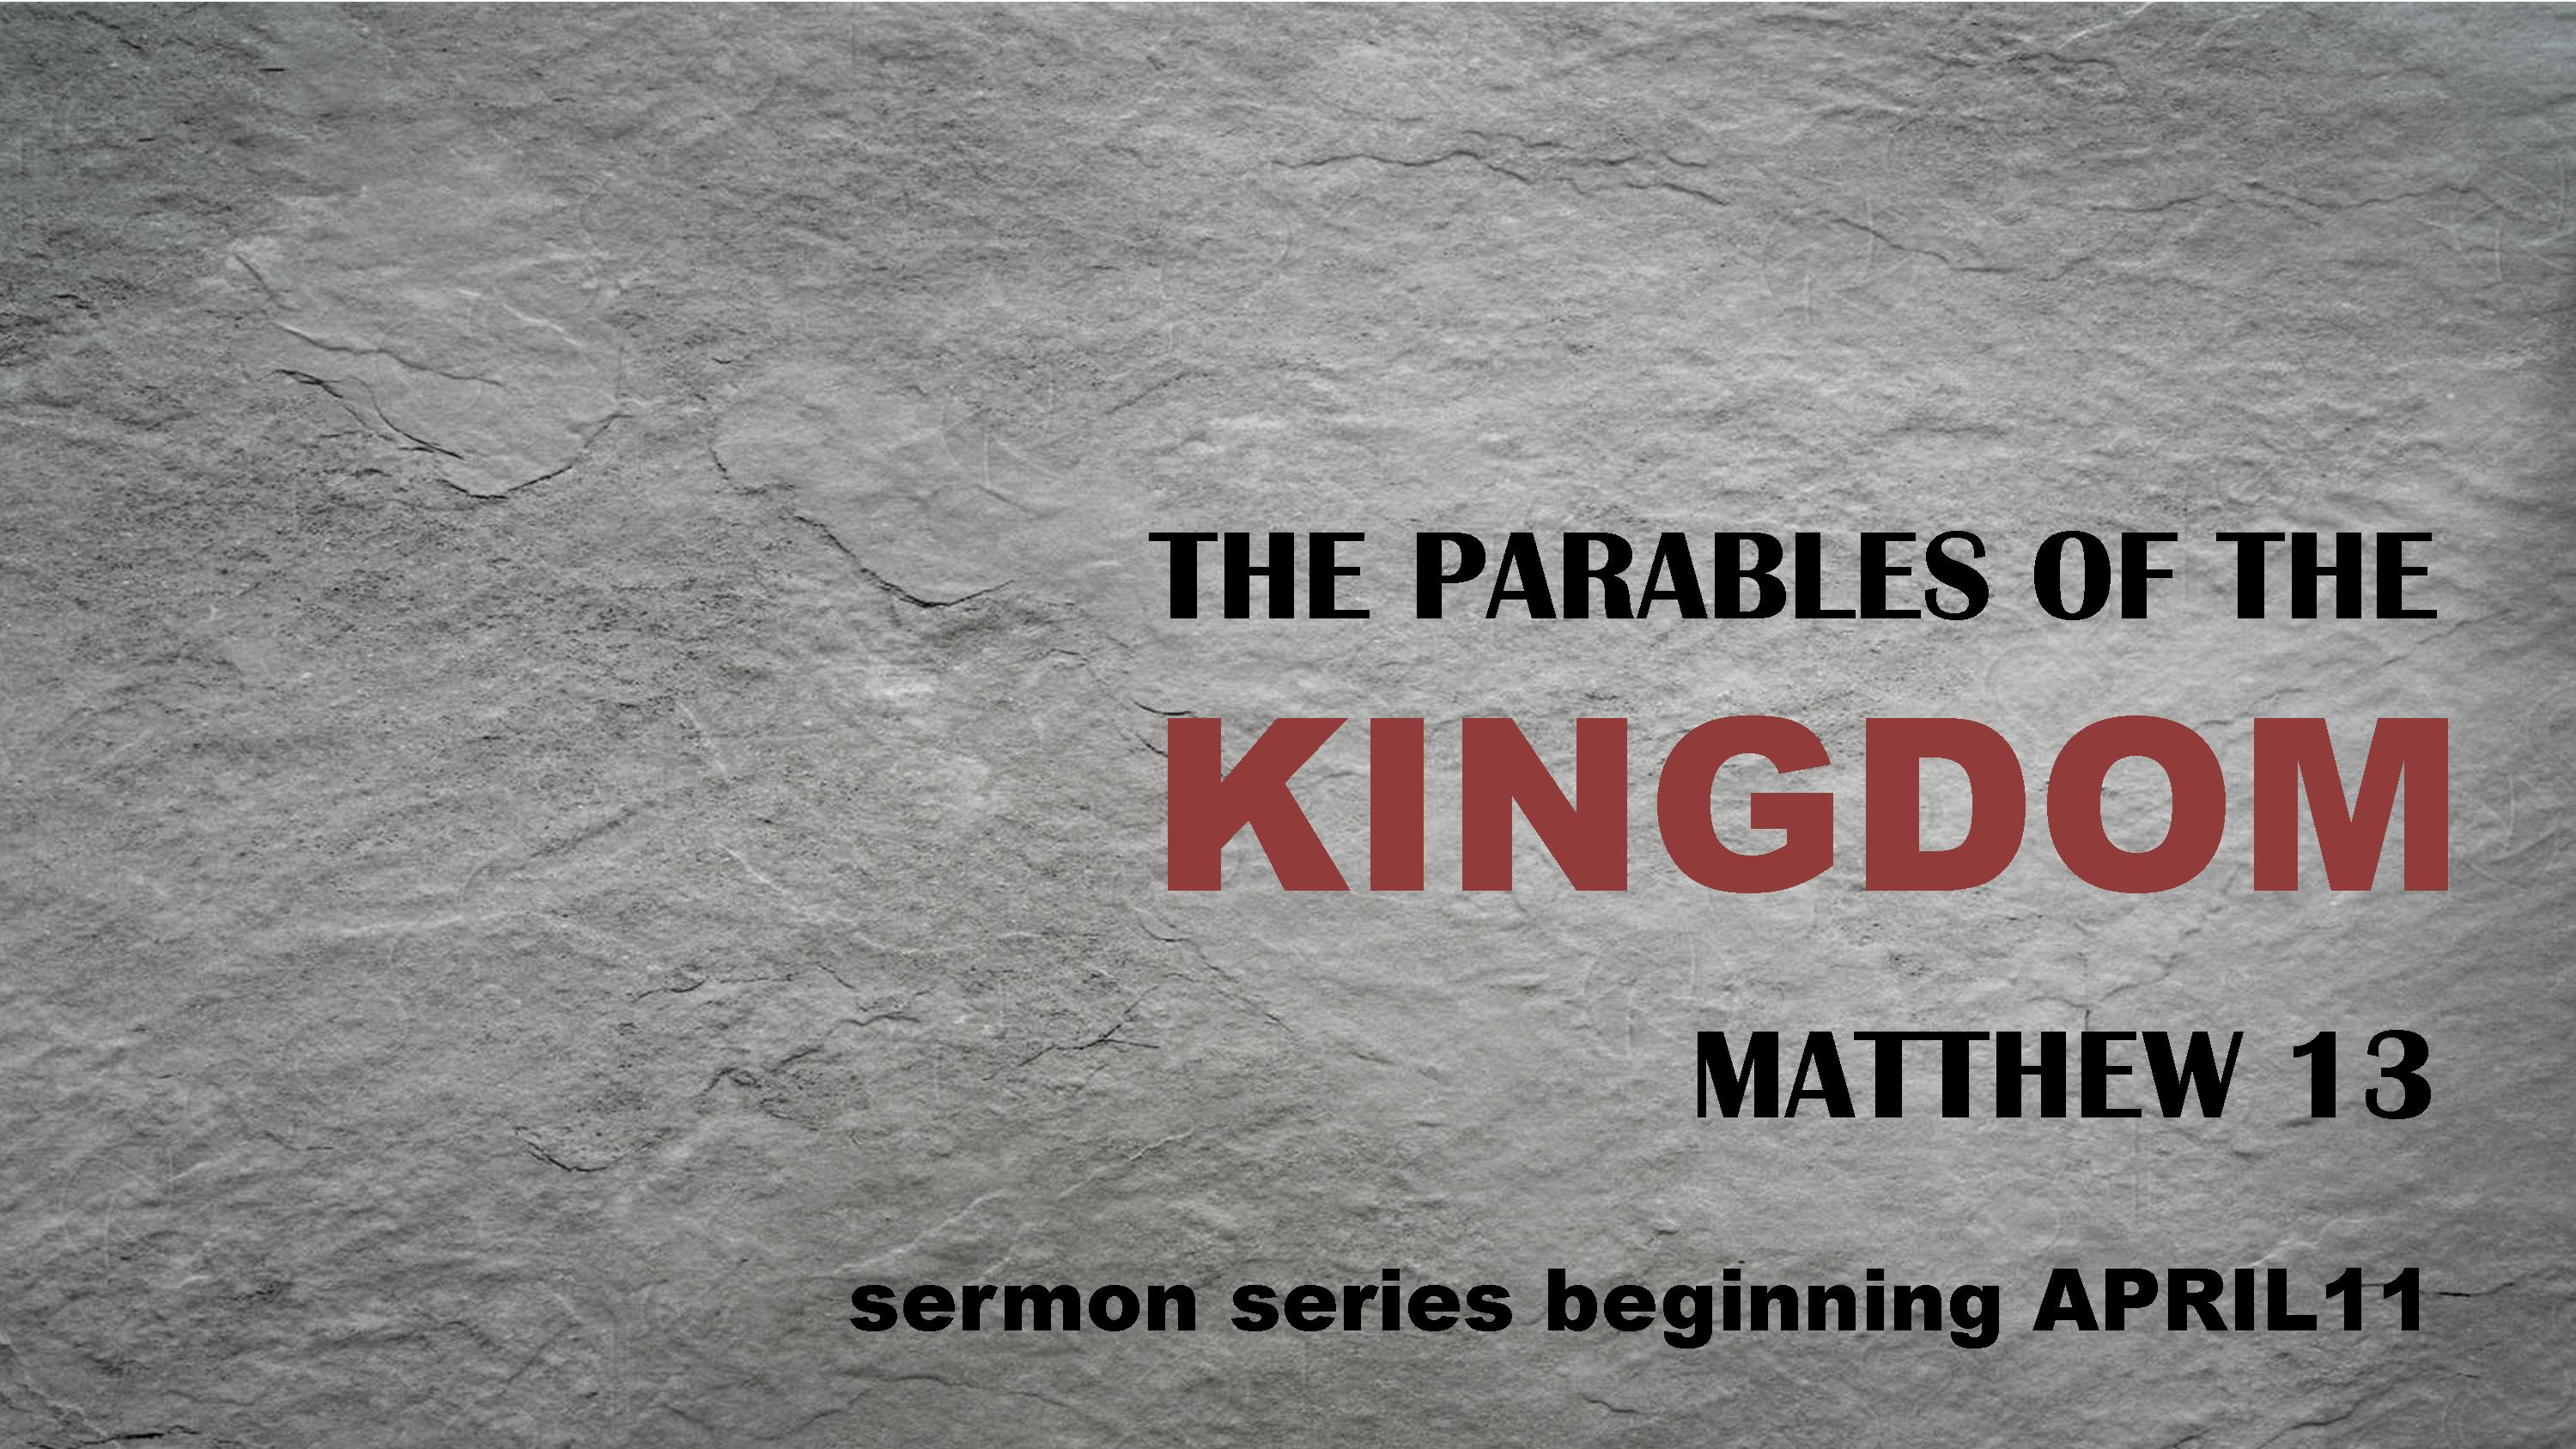 Parables of the Kingdom Sermon Series